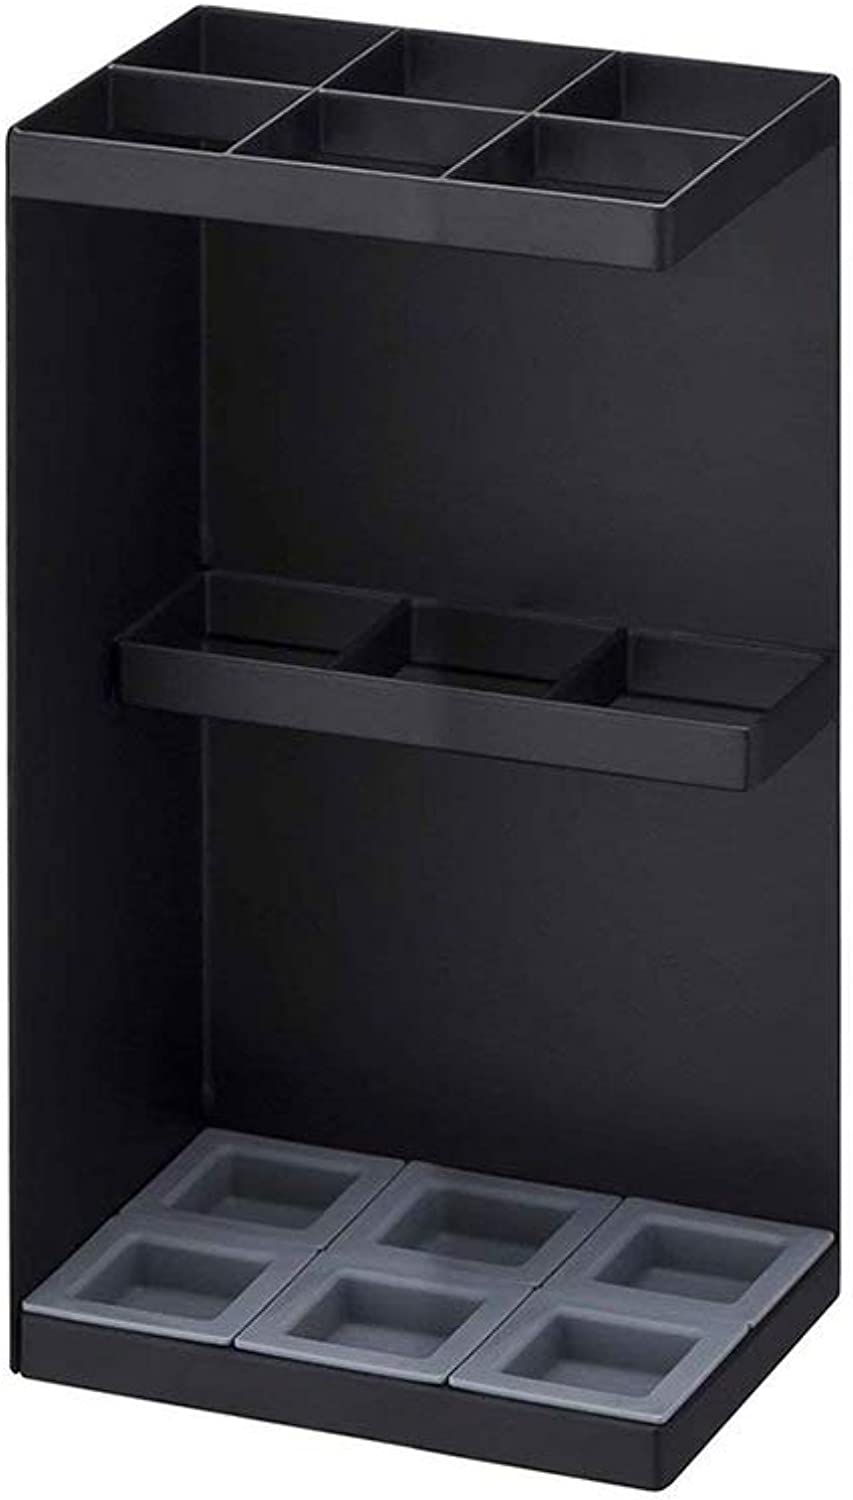 MYQ Umbrella Stand, Floor-Standing Umbrella Stand Corner Storage Rack for Family Long and Short Handle Umbrella Storage 2 colors Hallway Umbrella Stand (color   Black)